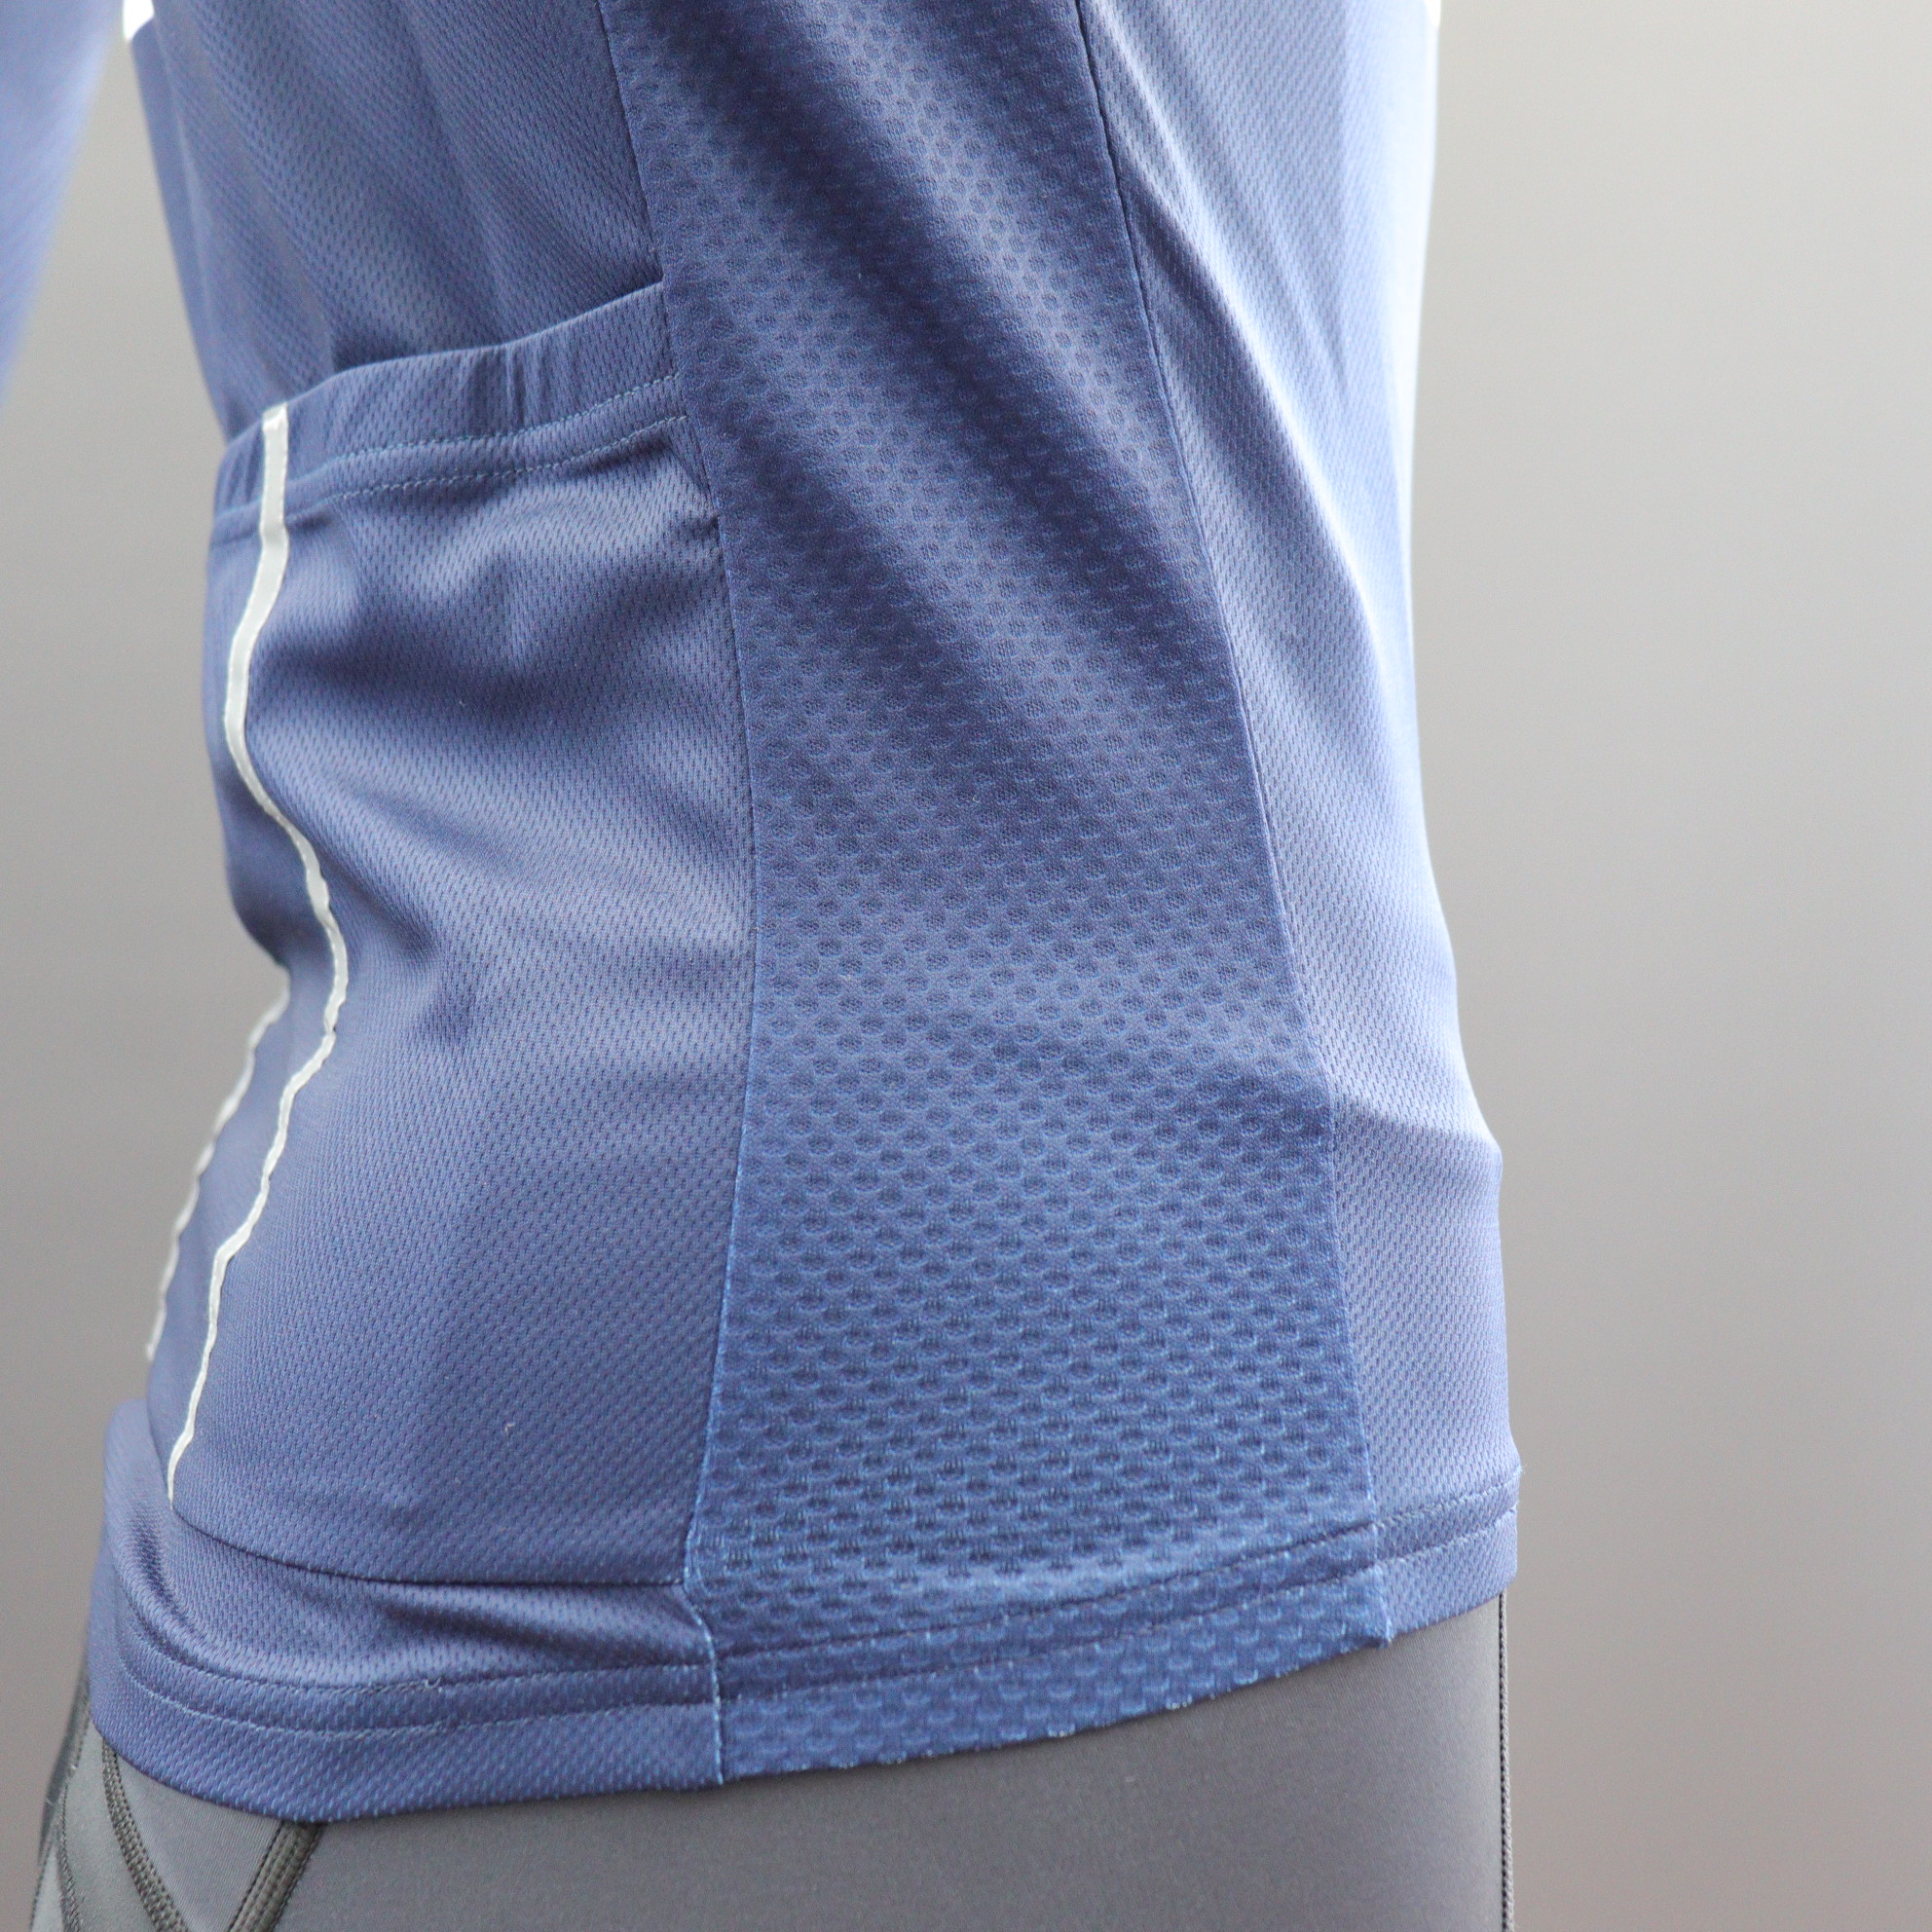 Long Sleeve Classic Cycle Jerseys - Vented Side Panels